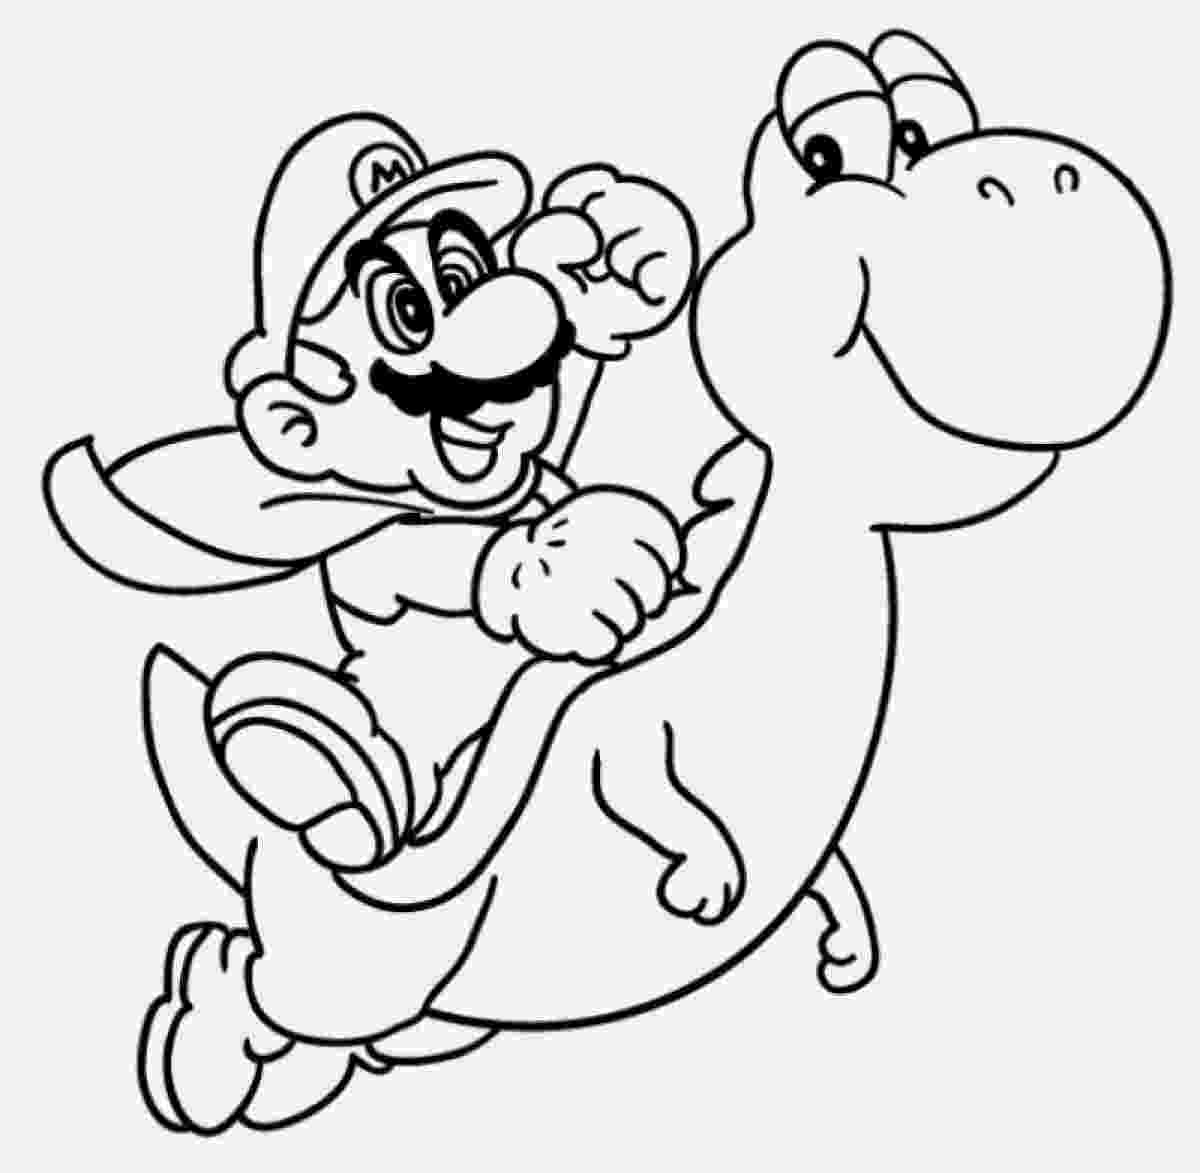 mario pictures to print all mario characters coloring pages coloring home to pictures print mario